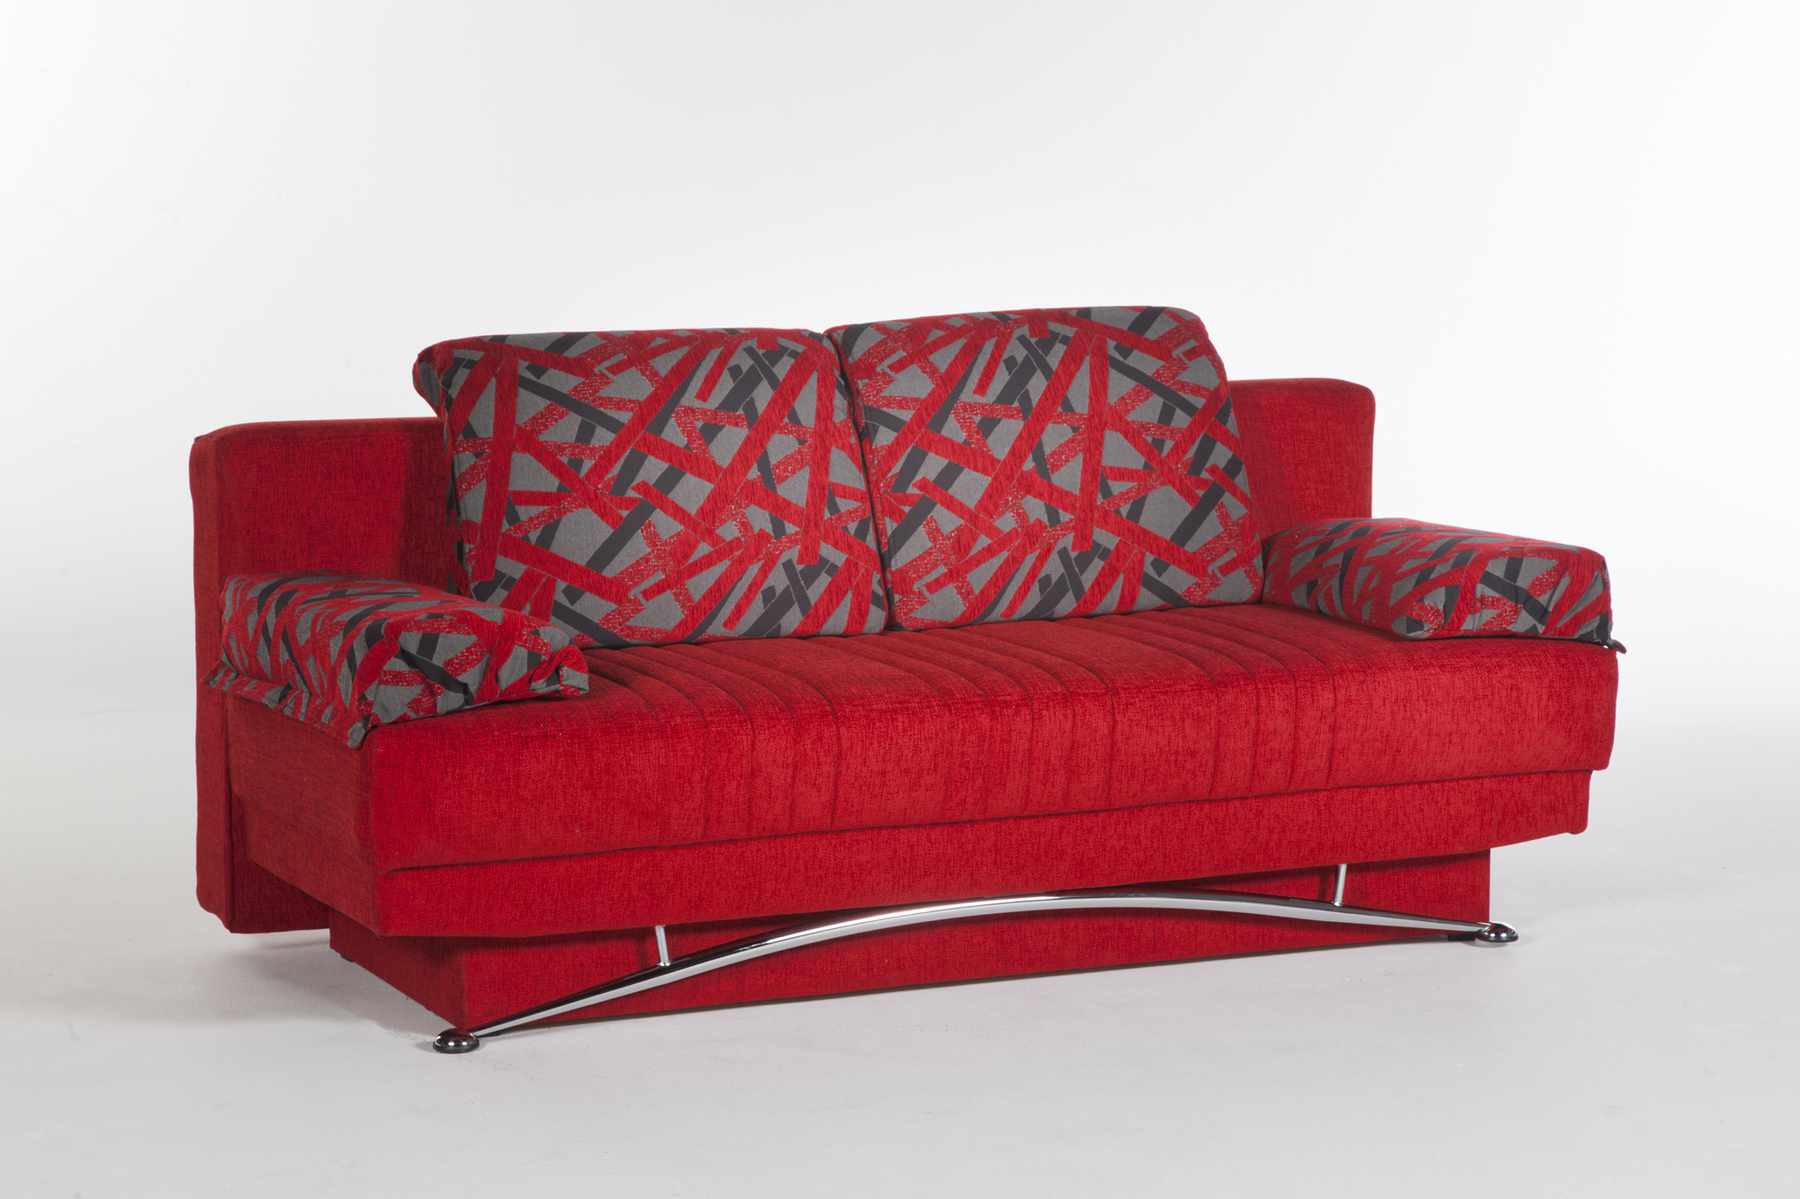 Red Sofas And Chairs Within Popular Fantasy Red Sofa Bed Sufantasy Sunset Furniture (Istikbal) Sleeper (View 15 of 20)